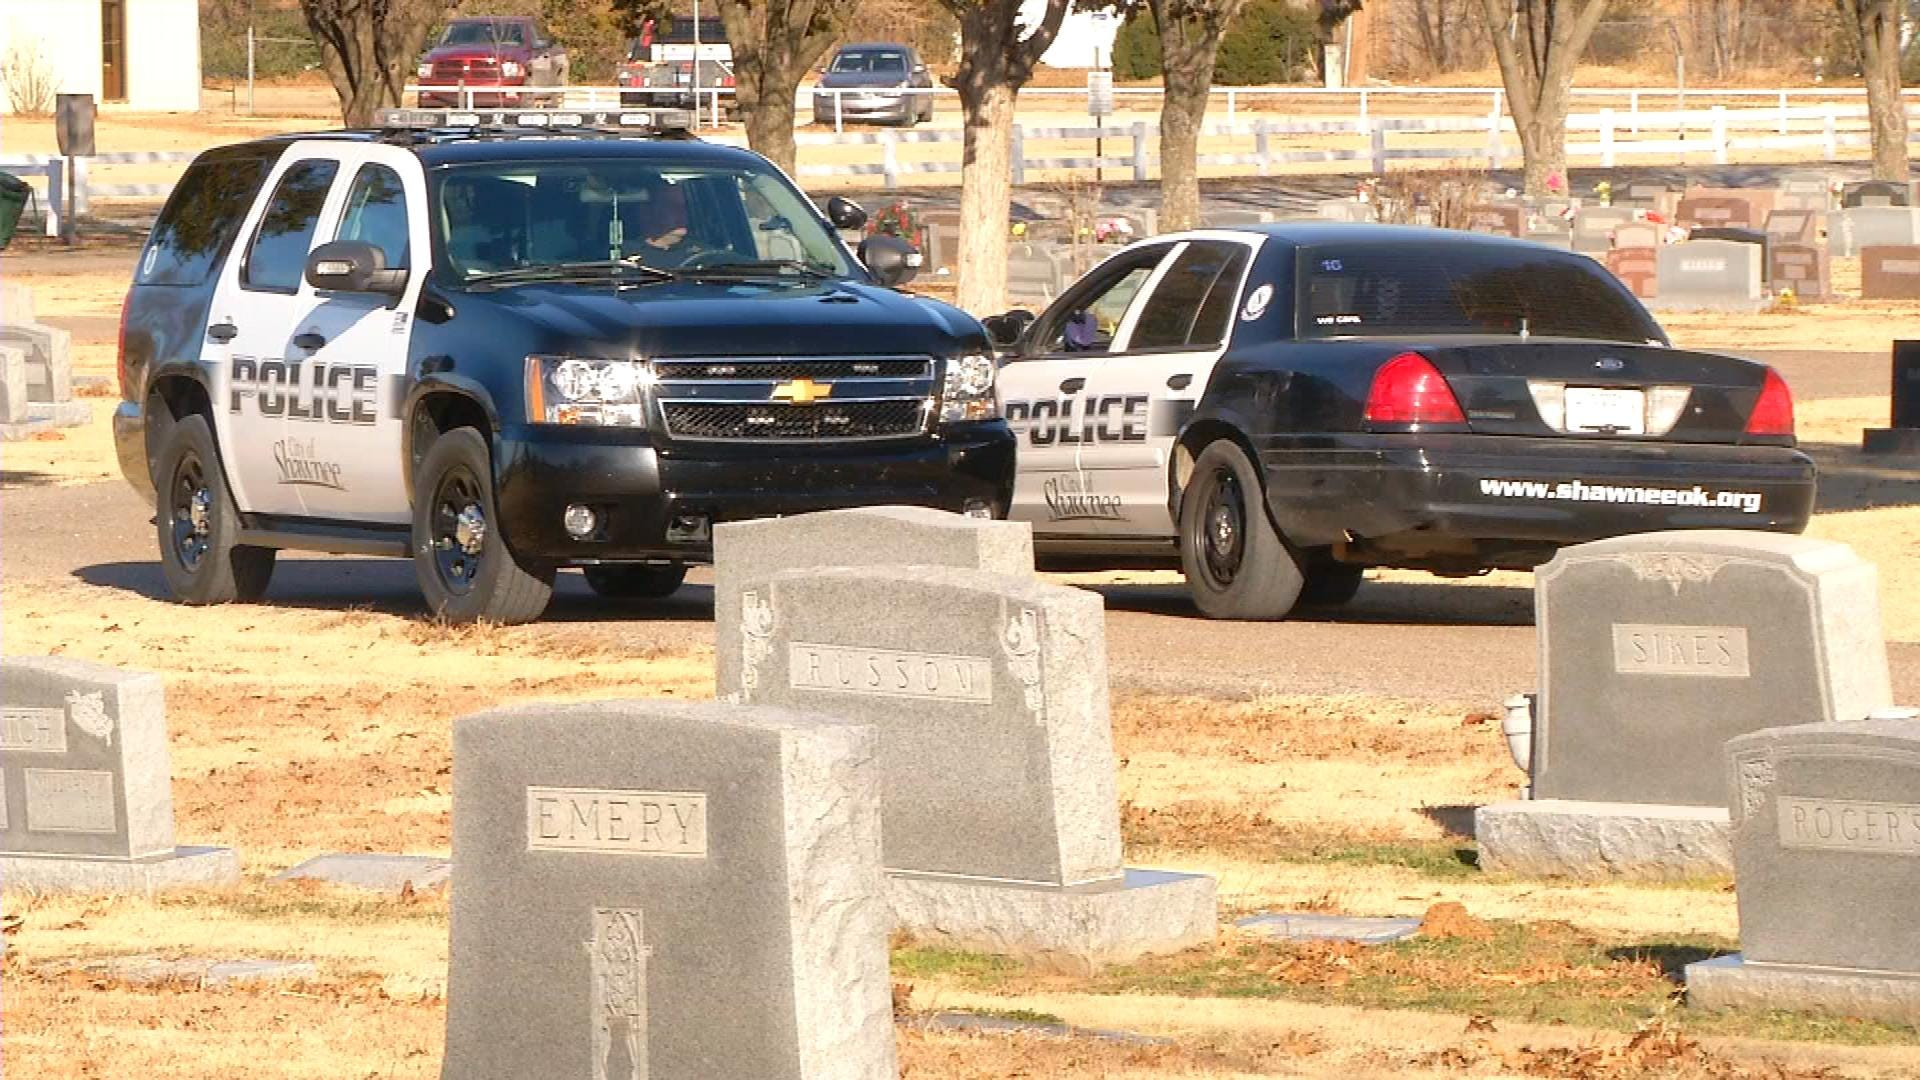 Over 200 Headstones Vandalized At Shawnee Cemetery Over Last 7 Months